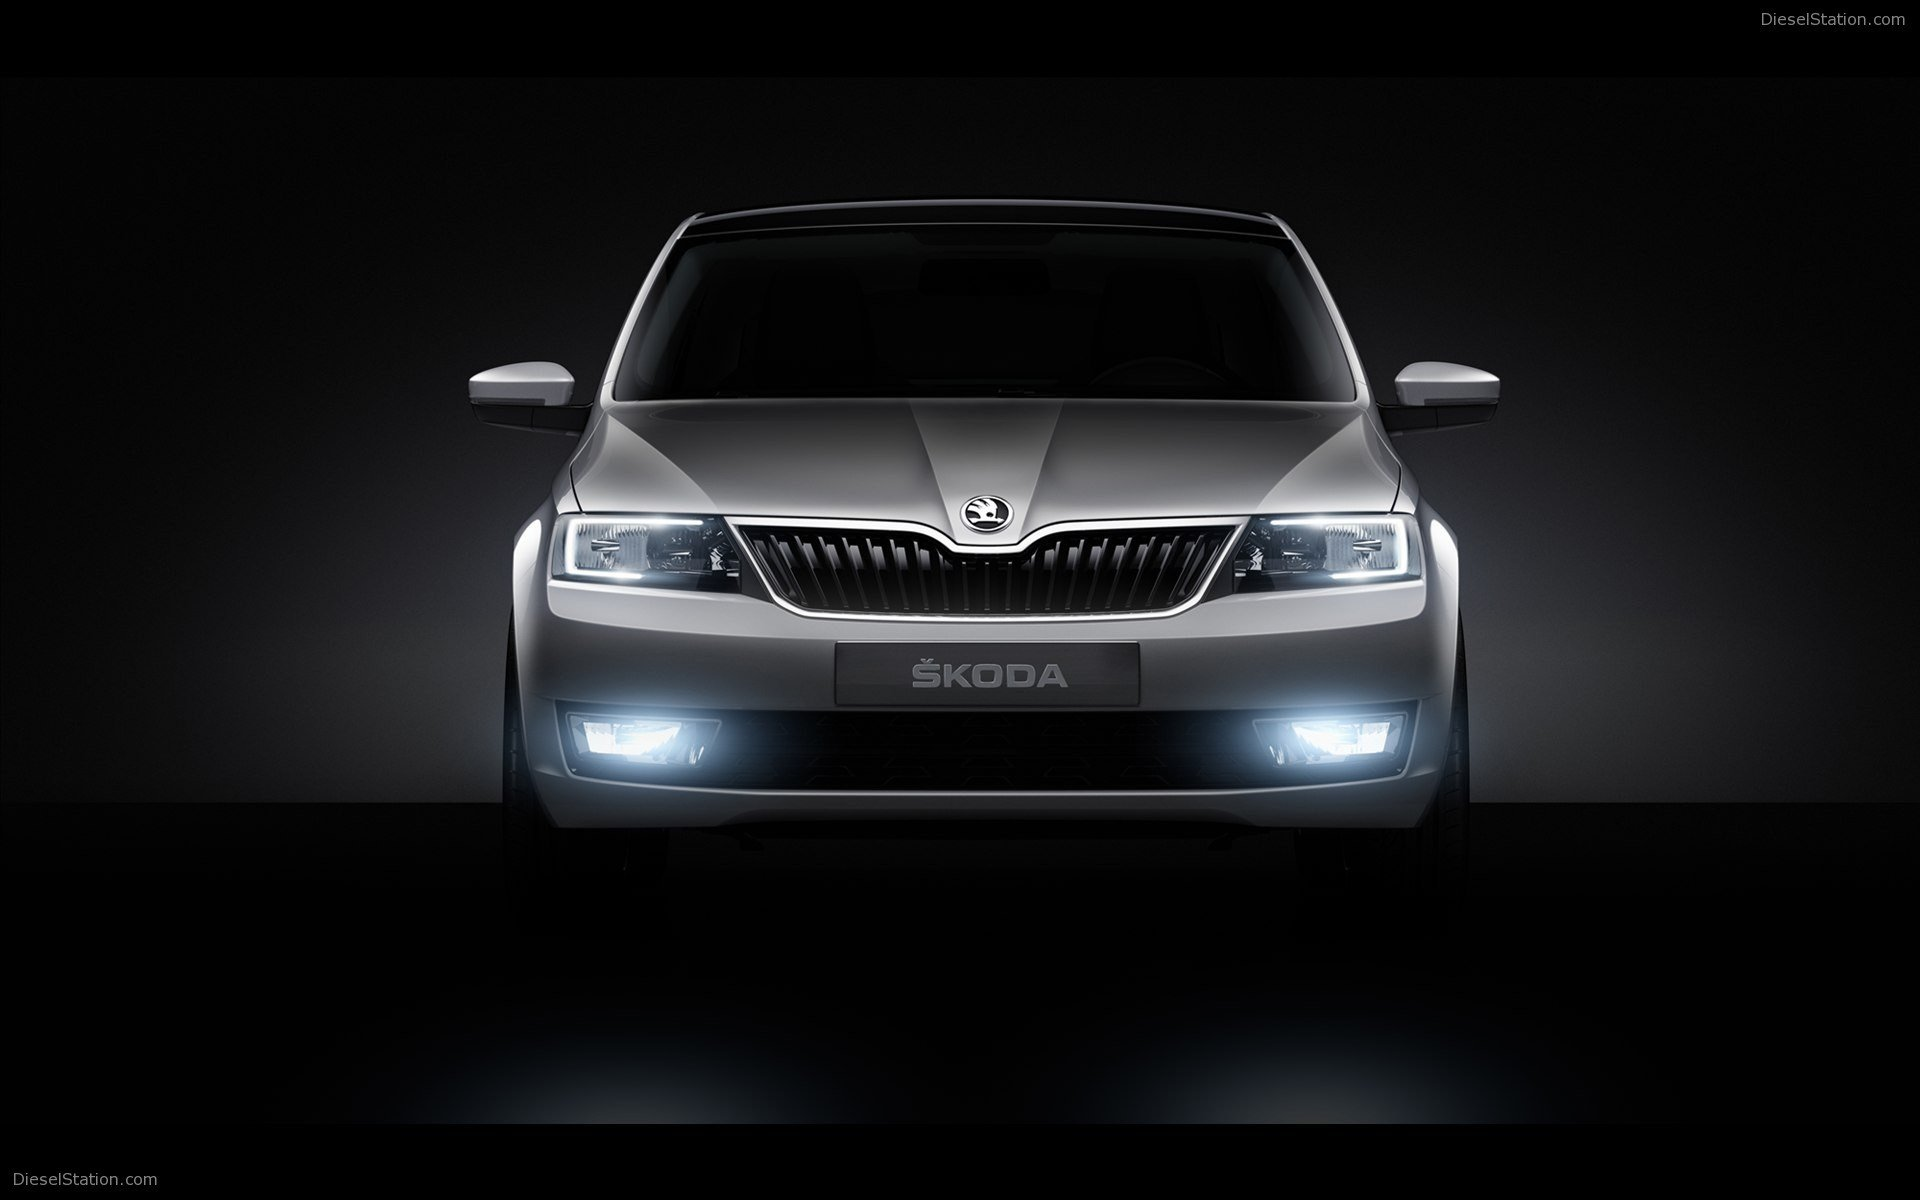 Latest Skoda Missionl Concept Car Widescreen Exotic Car Free Download